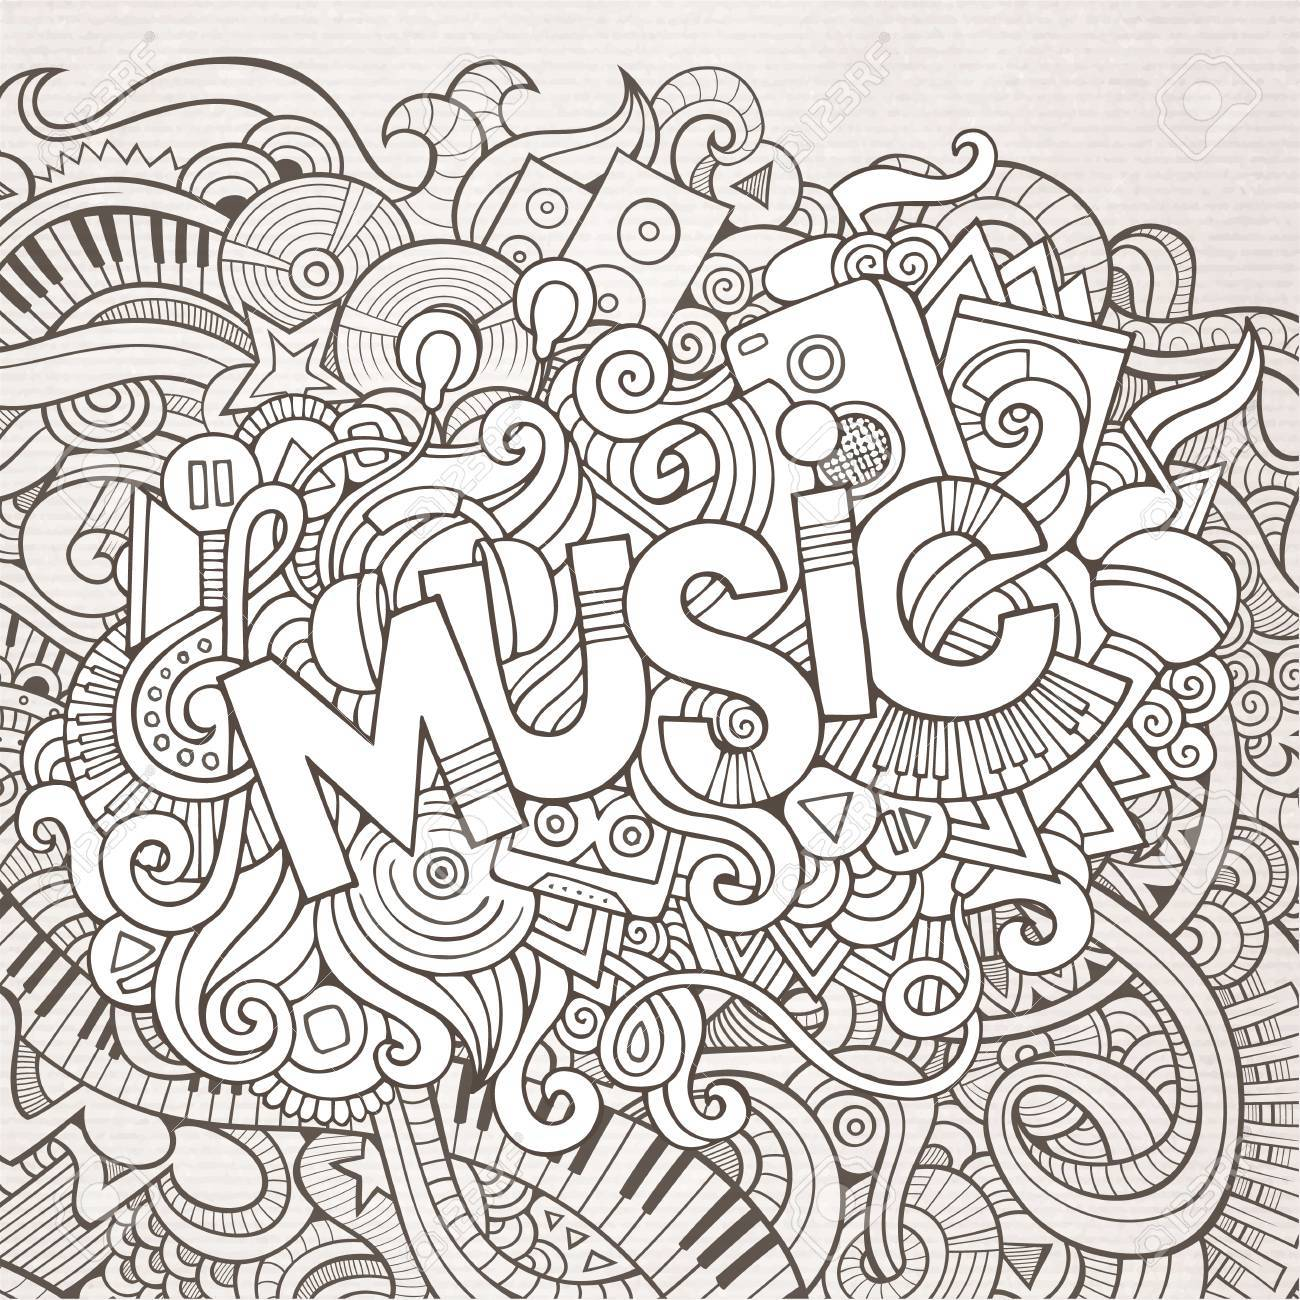 Stock vector music hand lettering and doodles elements - Music Hand Lettering And Doodles Elements Background Stock Vector 33304785